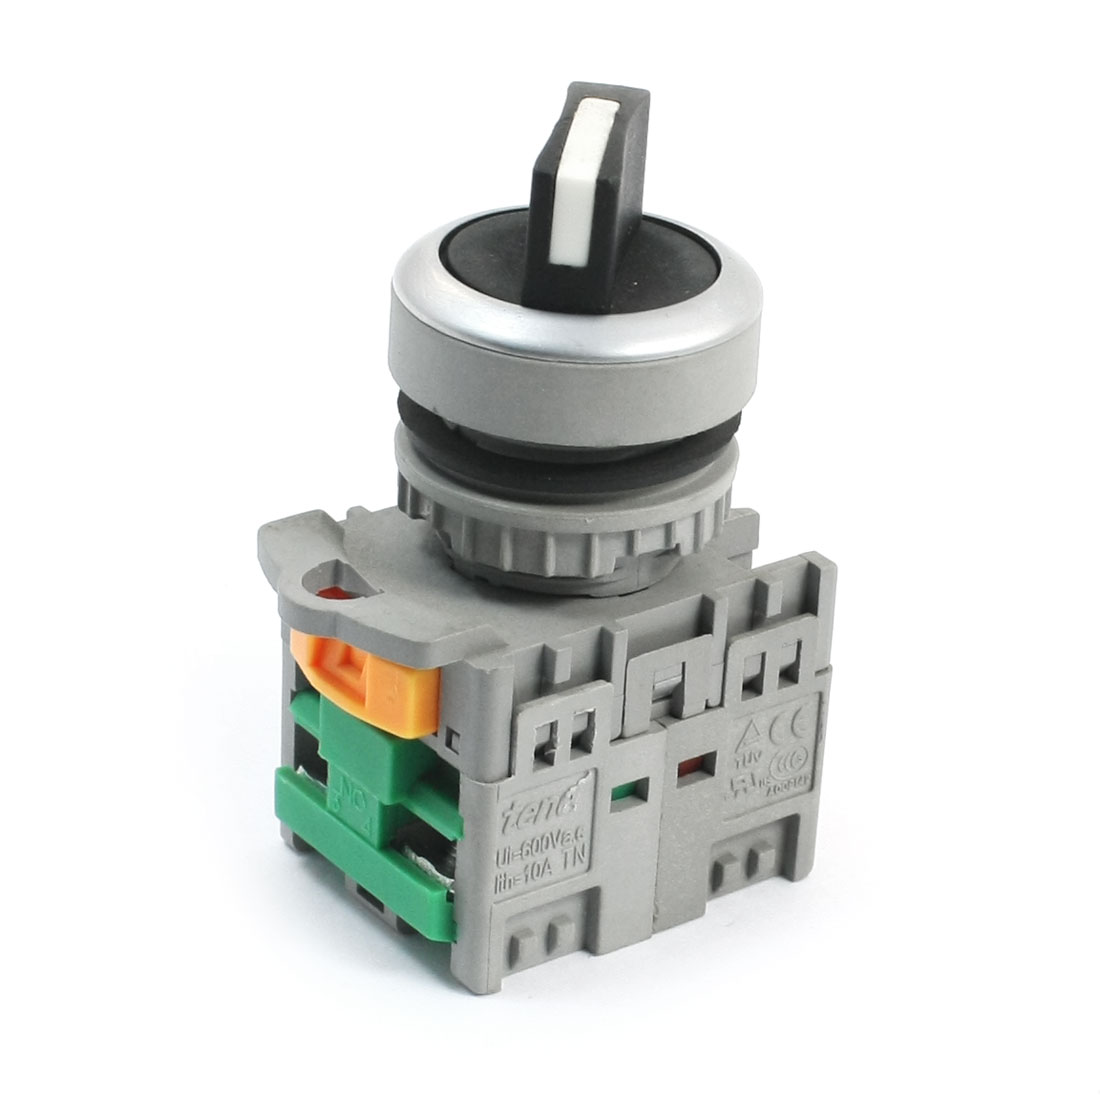 600V 10A 1NO+NC 4 Screw Terminal 2 Position Selector Locking Rotary Switch